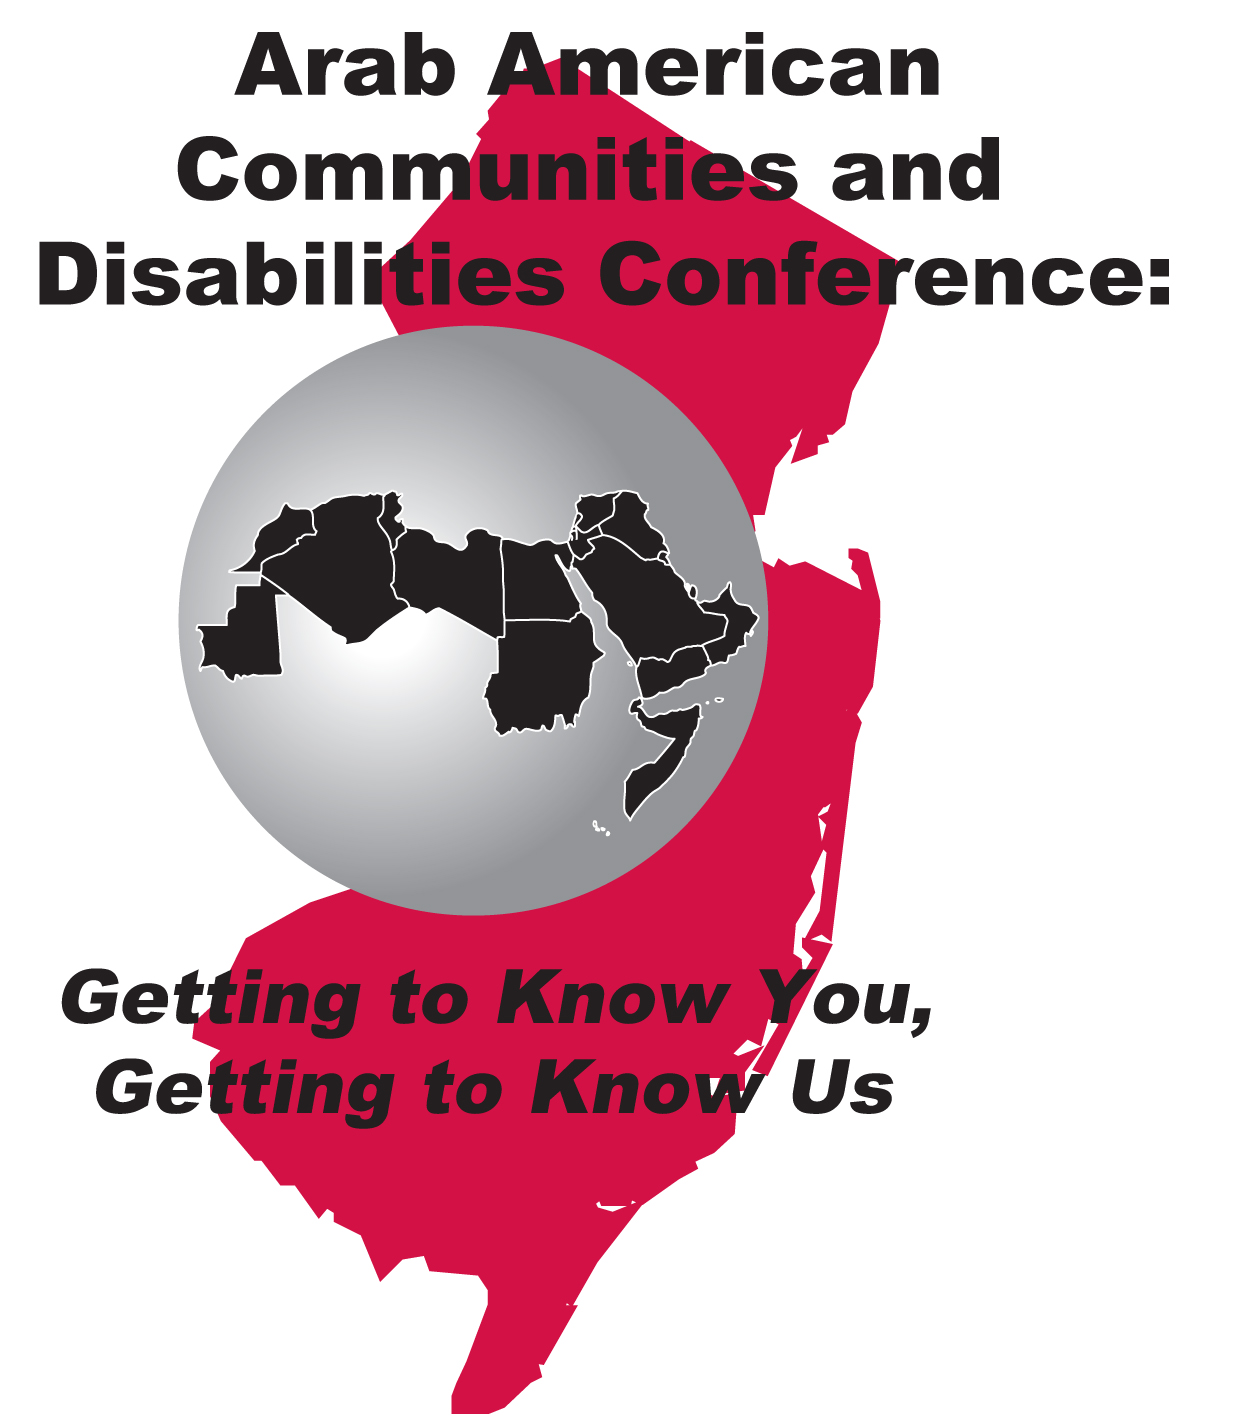 Arab American Communities and Disabilities: Getting to Know You, Getting to Know Us